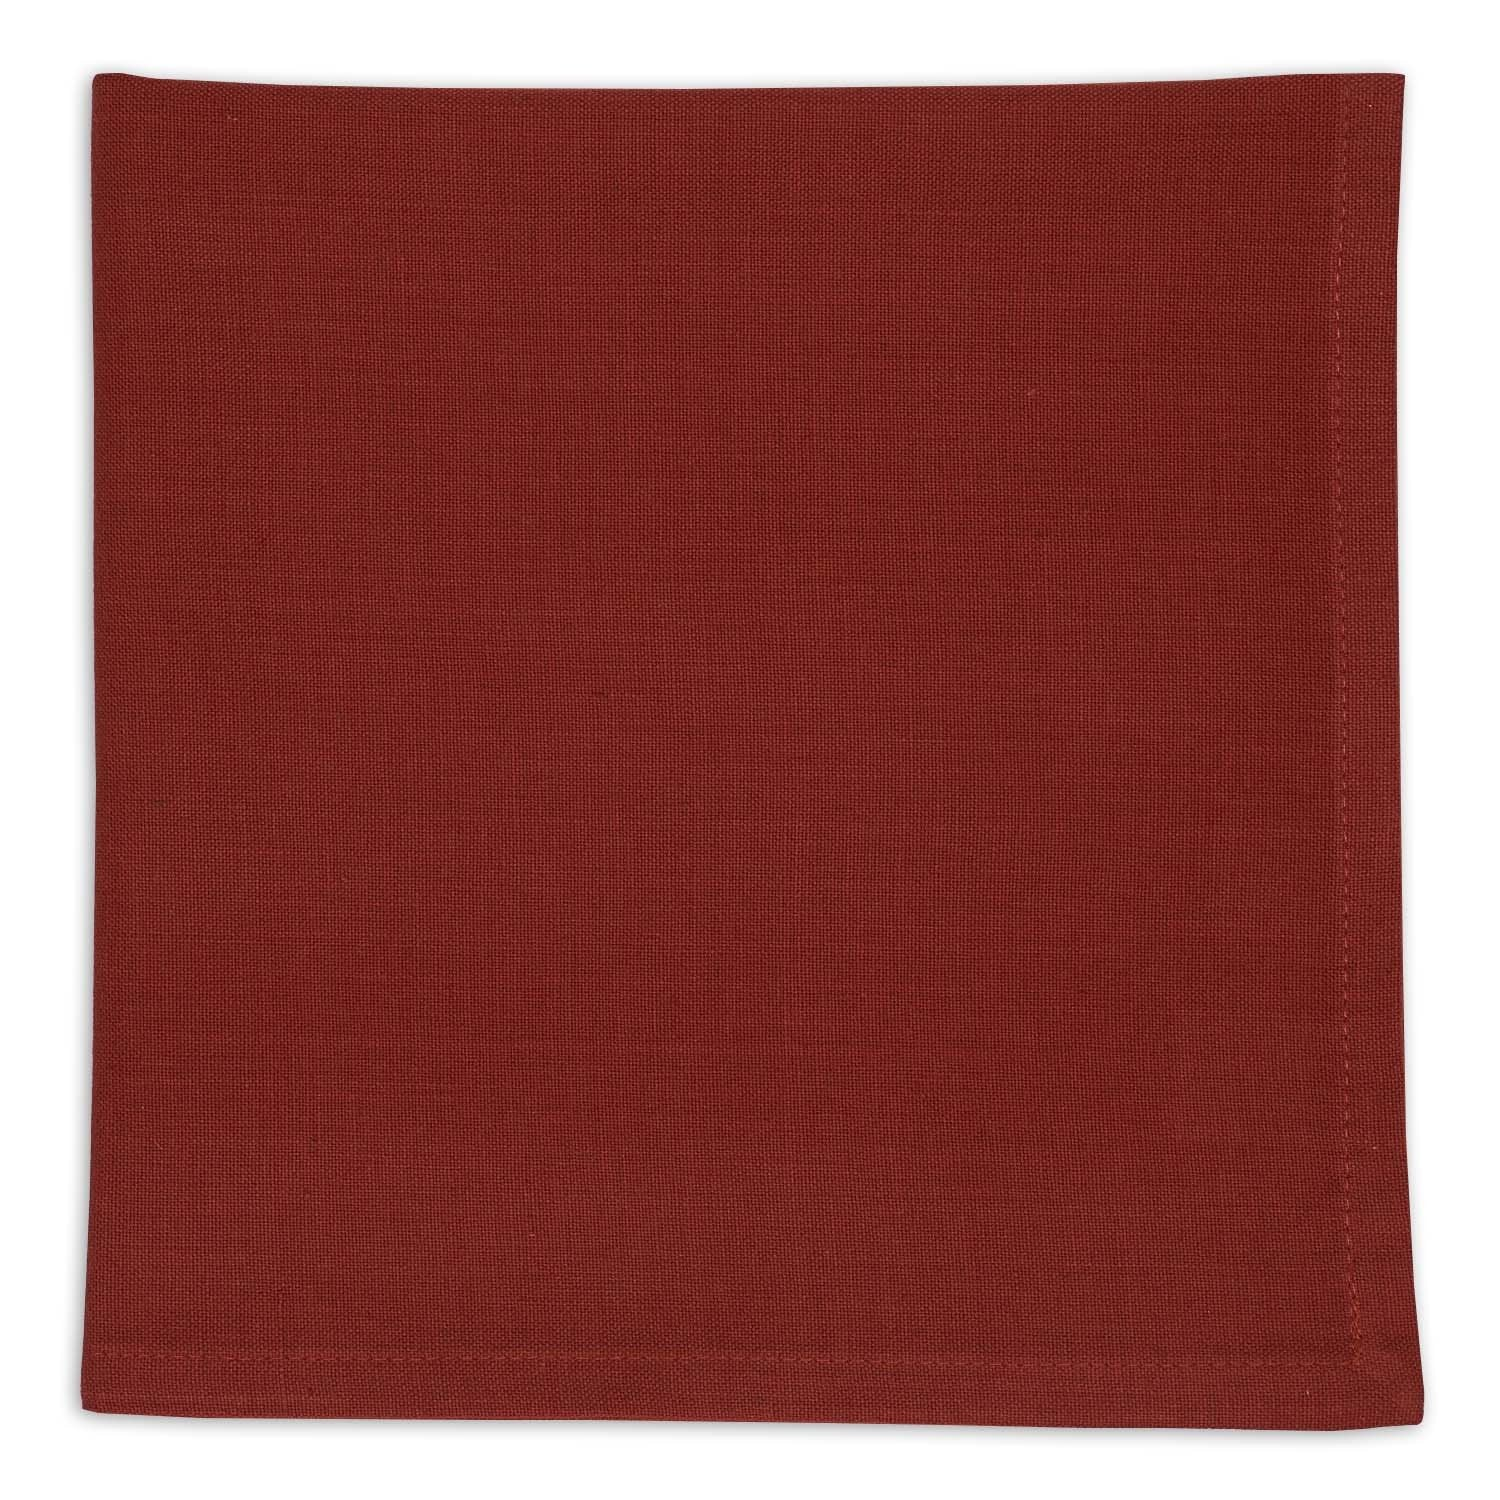 Cloth Table Napkin in Picante Red